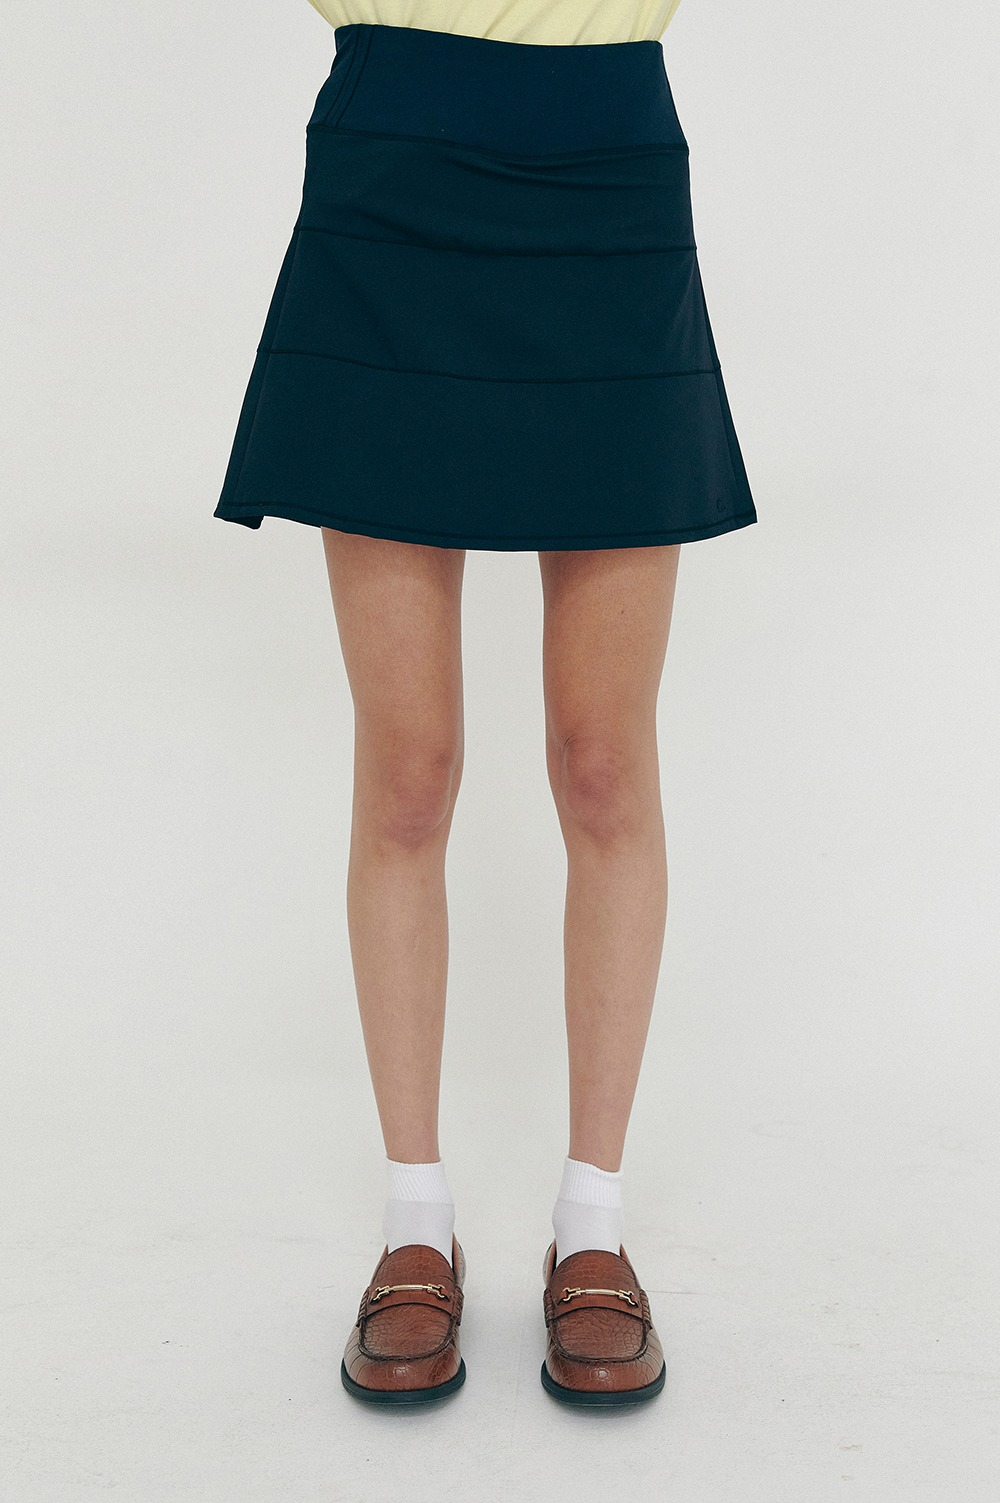 clove - [SS21 clove] Block Pleated Skirt Navy